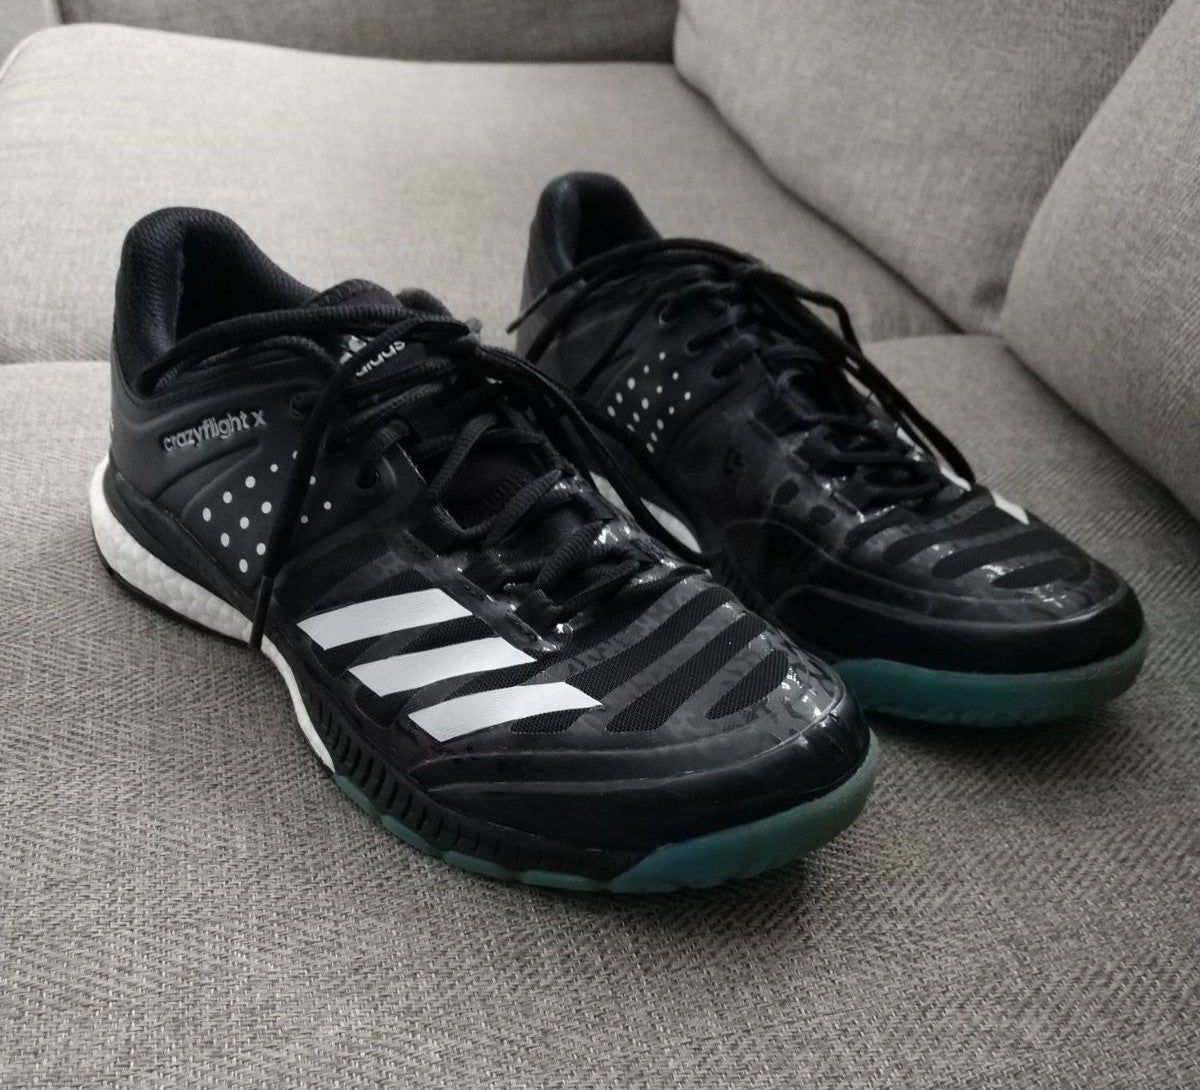 Women S Size 9 Volleyball Shoes From Adidas The Style Is Crazyflight X And They Are Black And White Great Preowned Volleyball Shoes Adidas Athletic Adidas